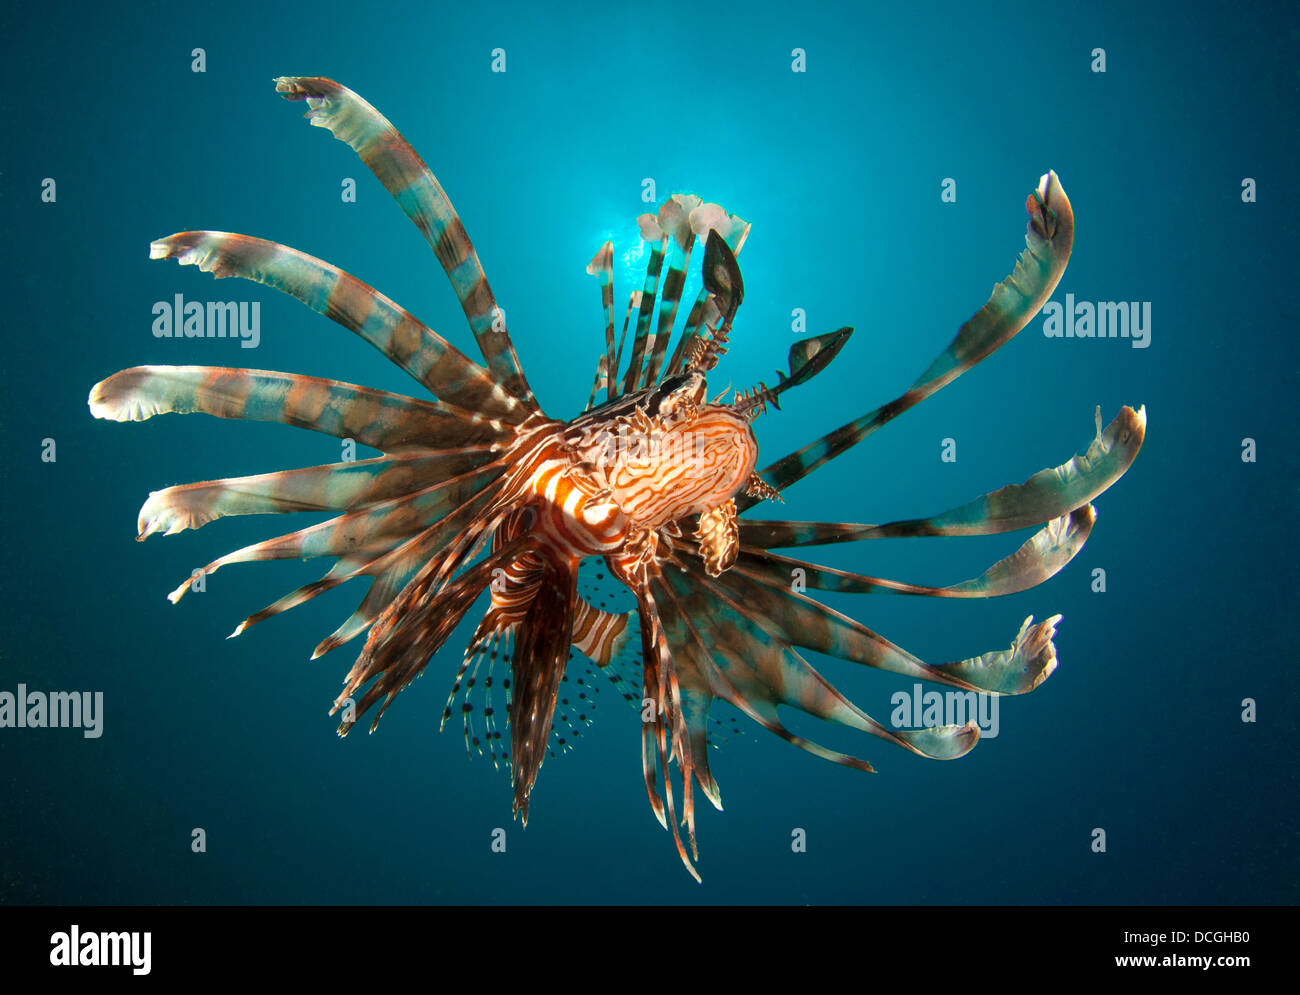 Close-up view of a lionfish (Pterois volitans), Gorontalo, Indonesia. - Stock Image